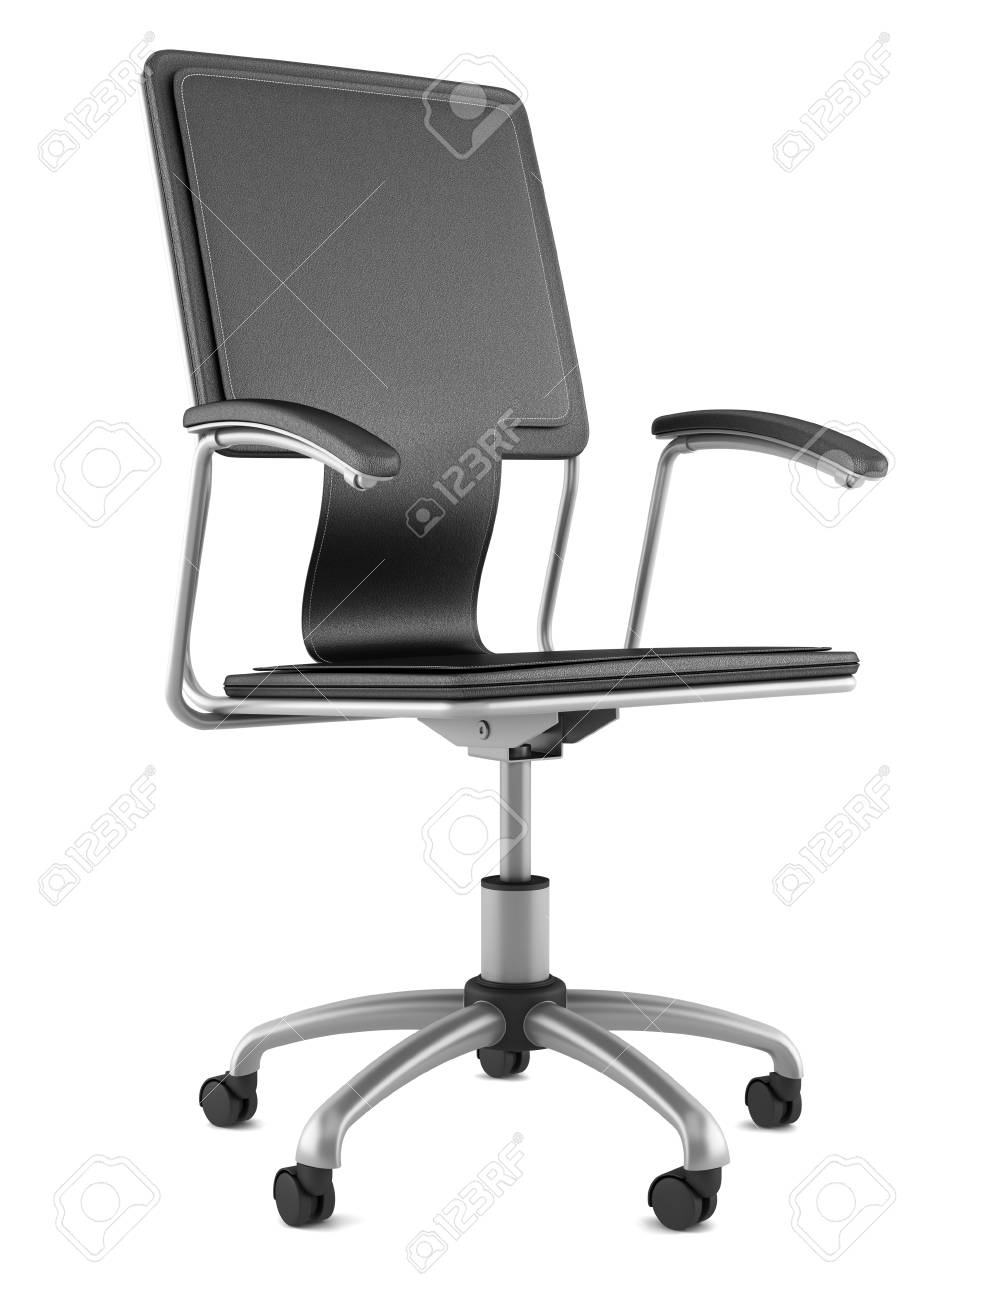 Modern Black Leather Office Chair Isolated On White Background Stock Photo Picture And Royalty Free Image Image 11138402